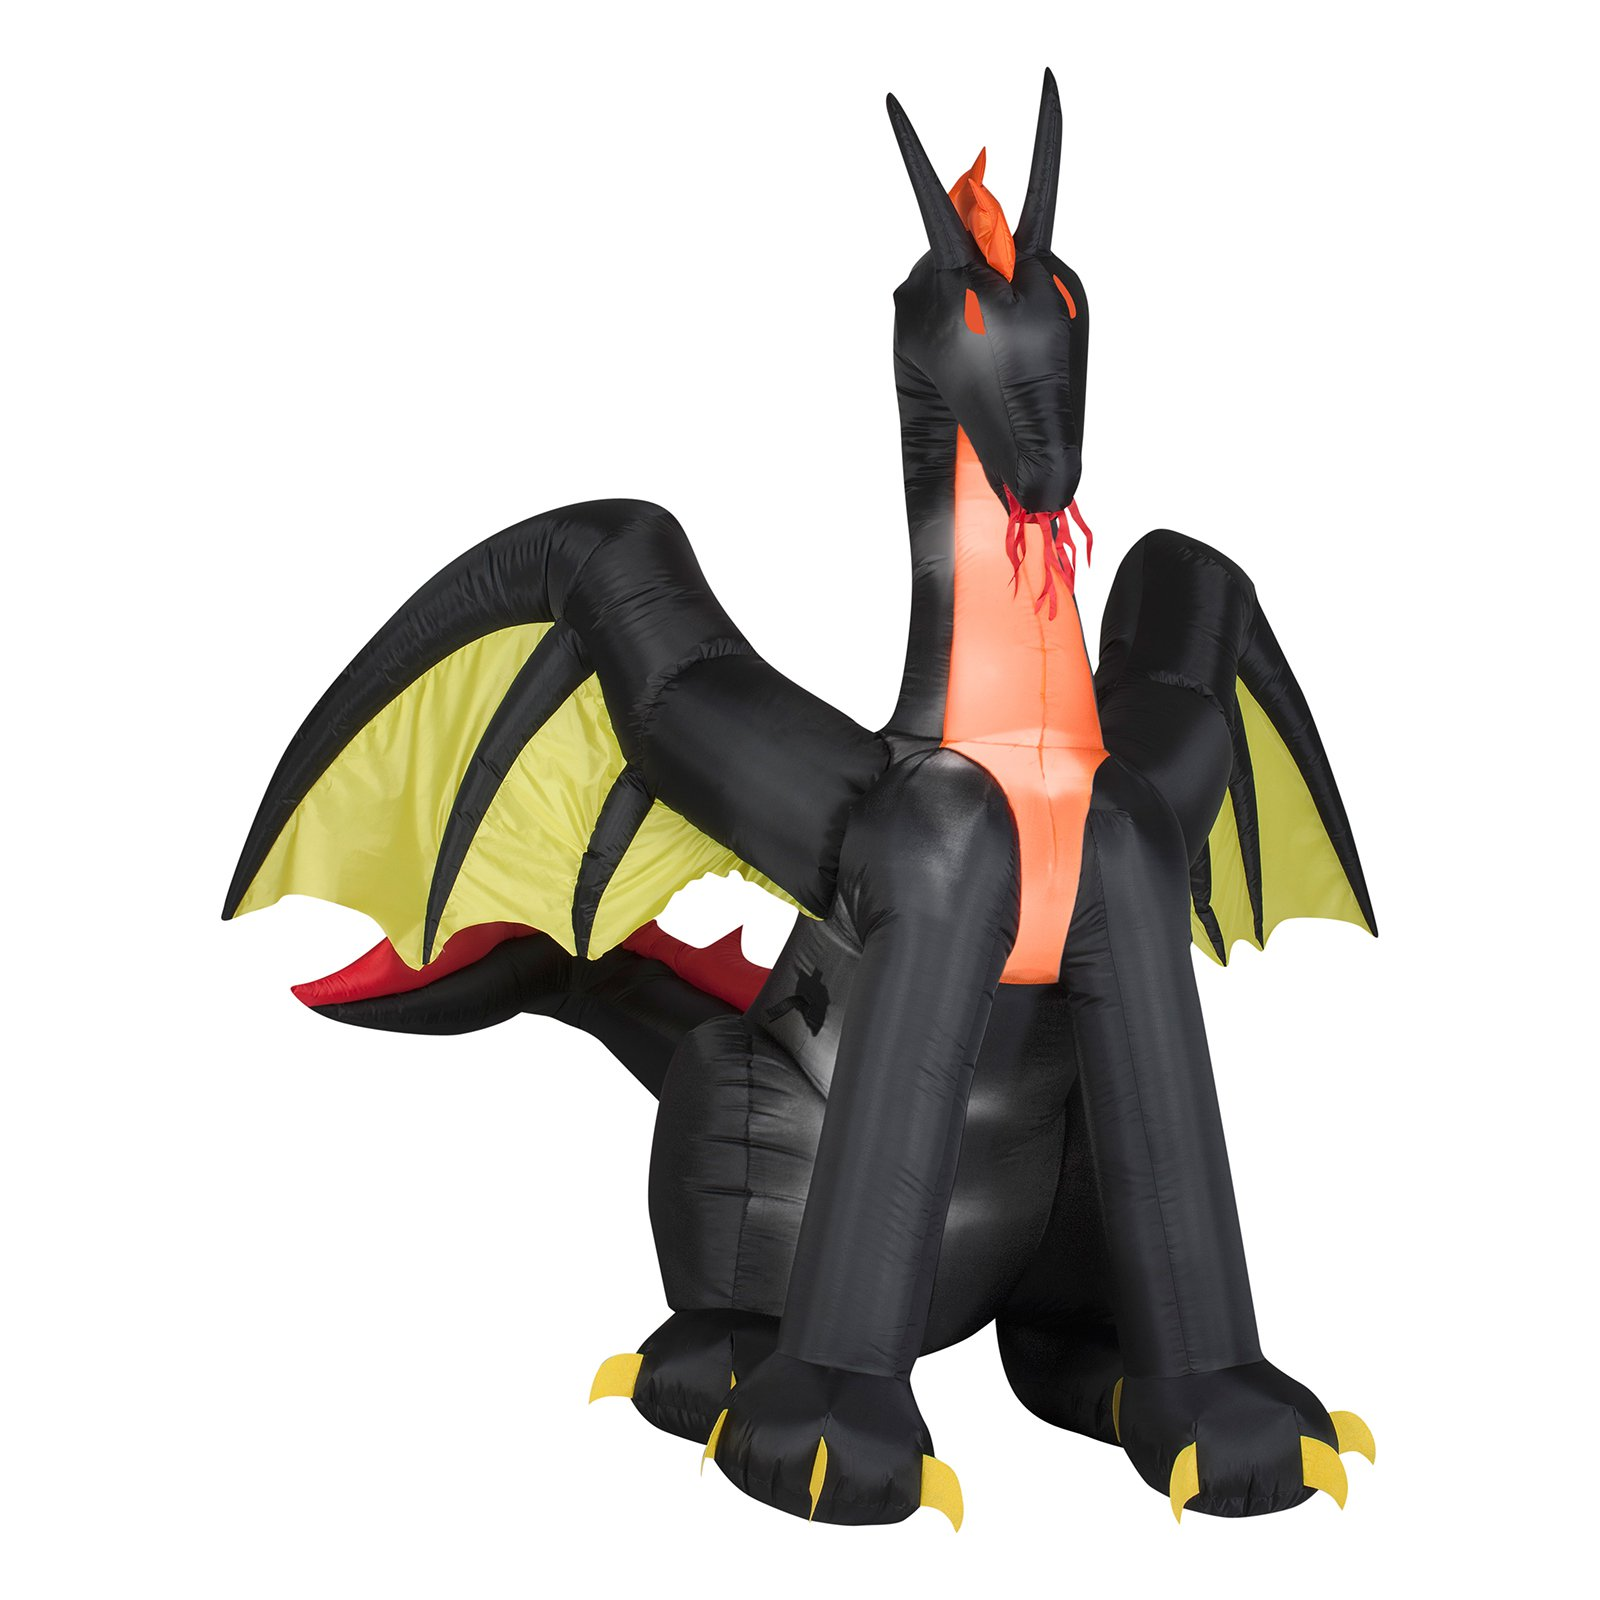 6' Airblown Inflatables Animated Fire Dragon with Wings Halloween Decoration